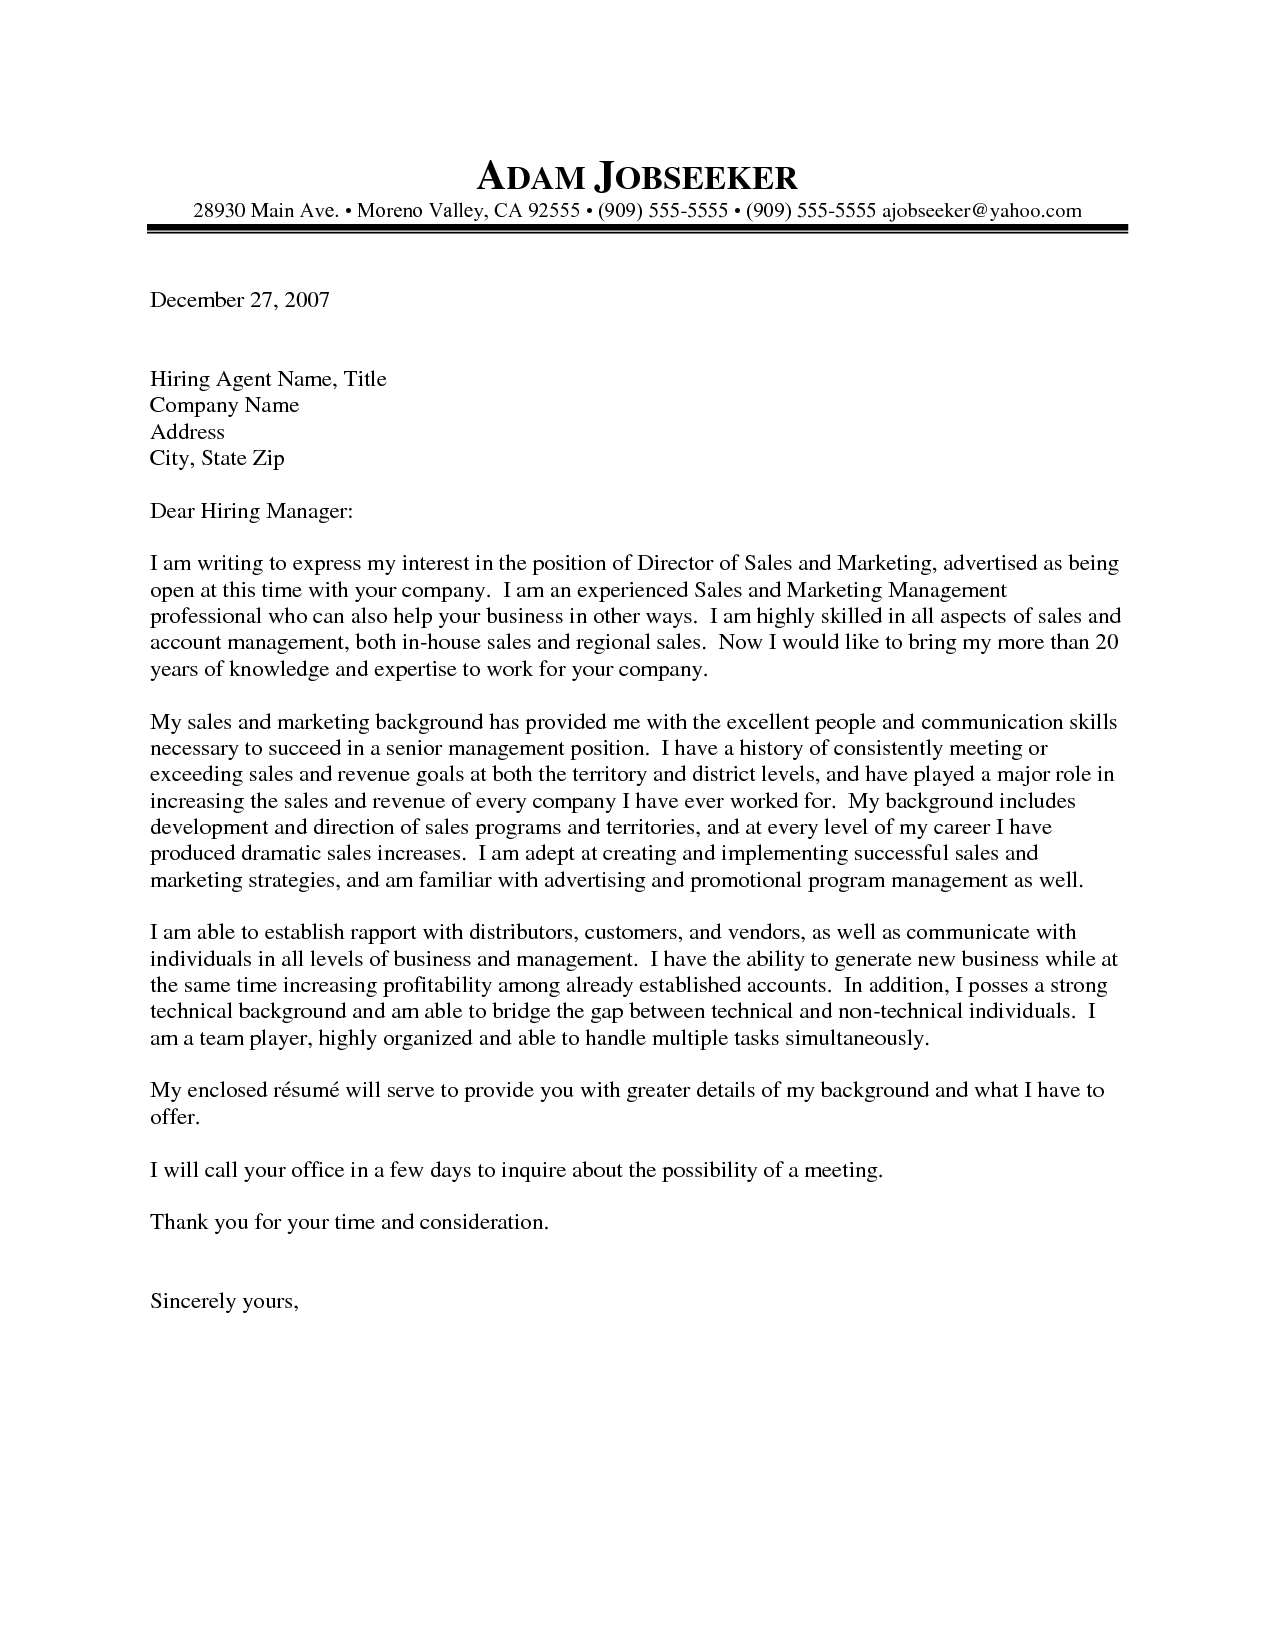 Capture Manager Cover Letter Professionals Resume Samples Cover ...